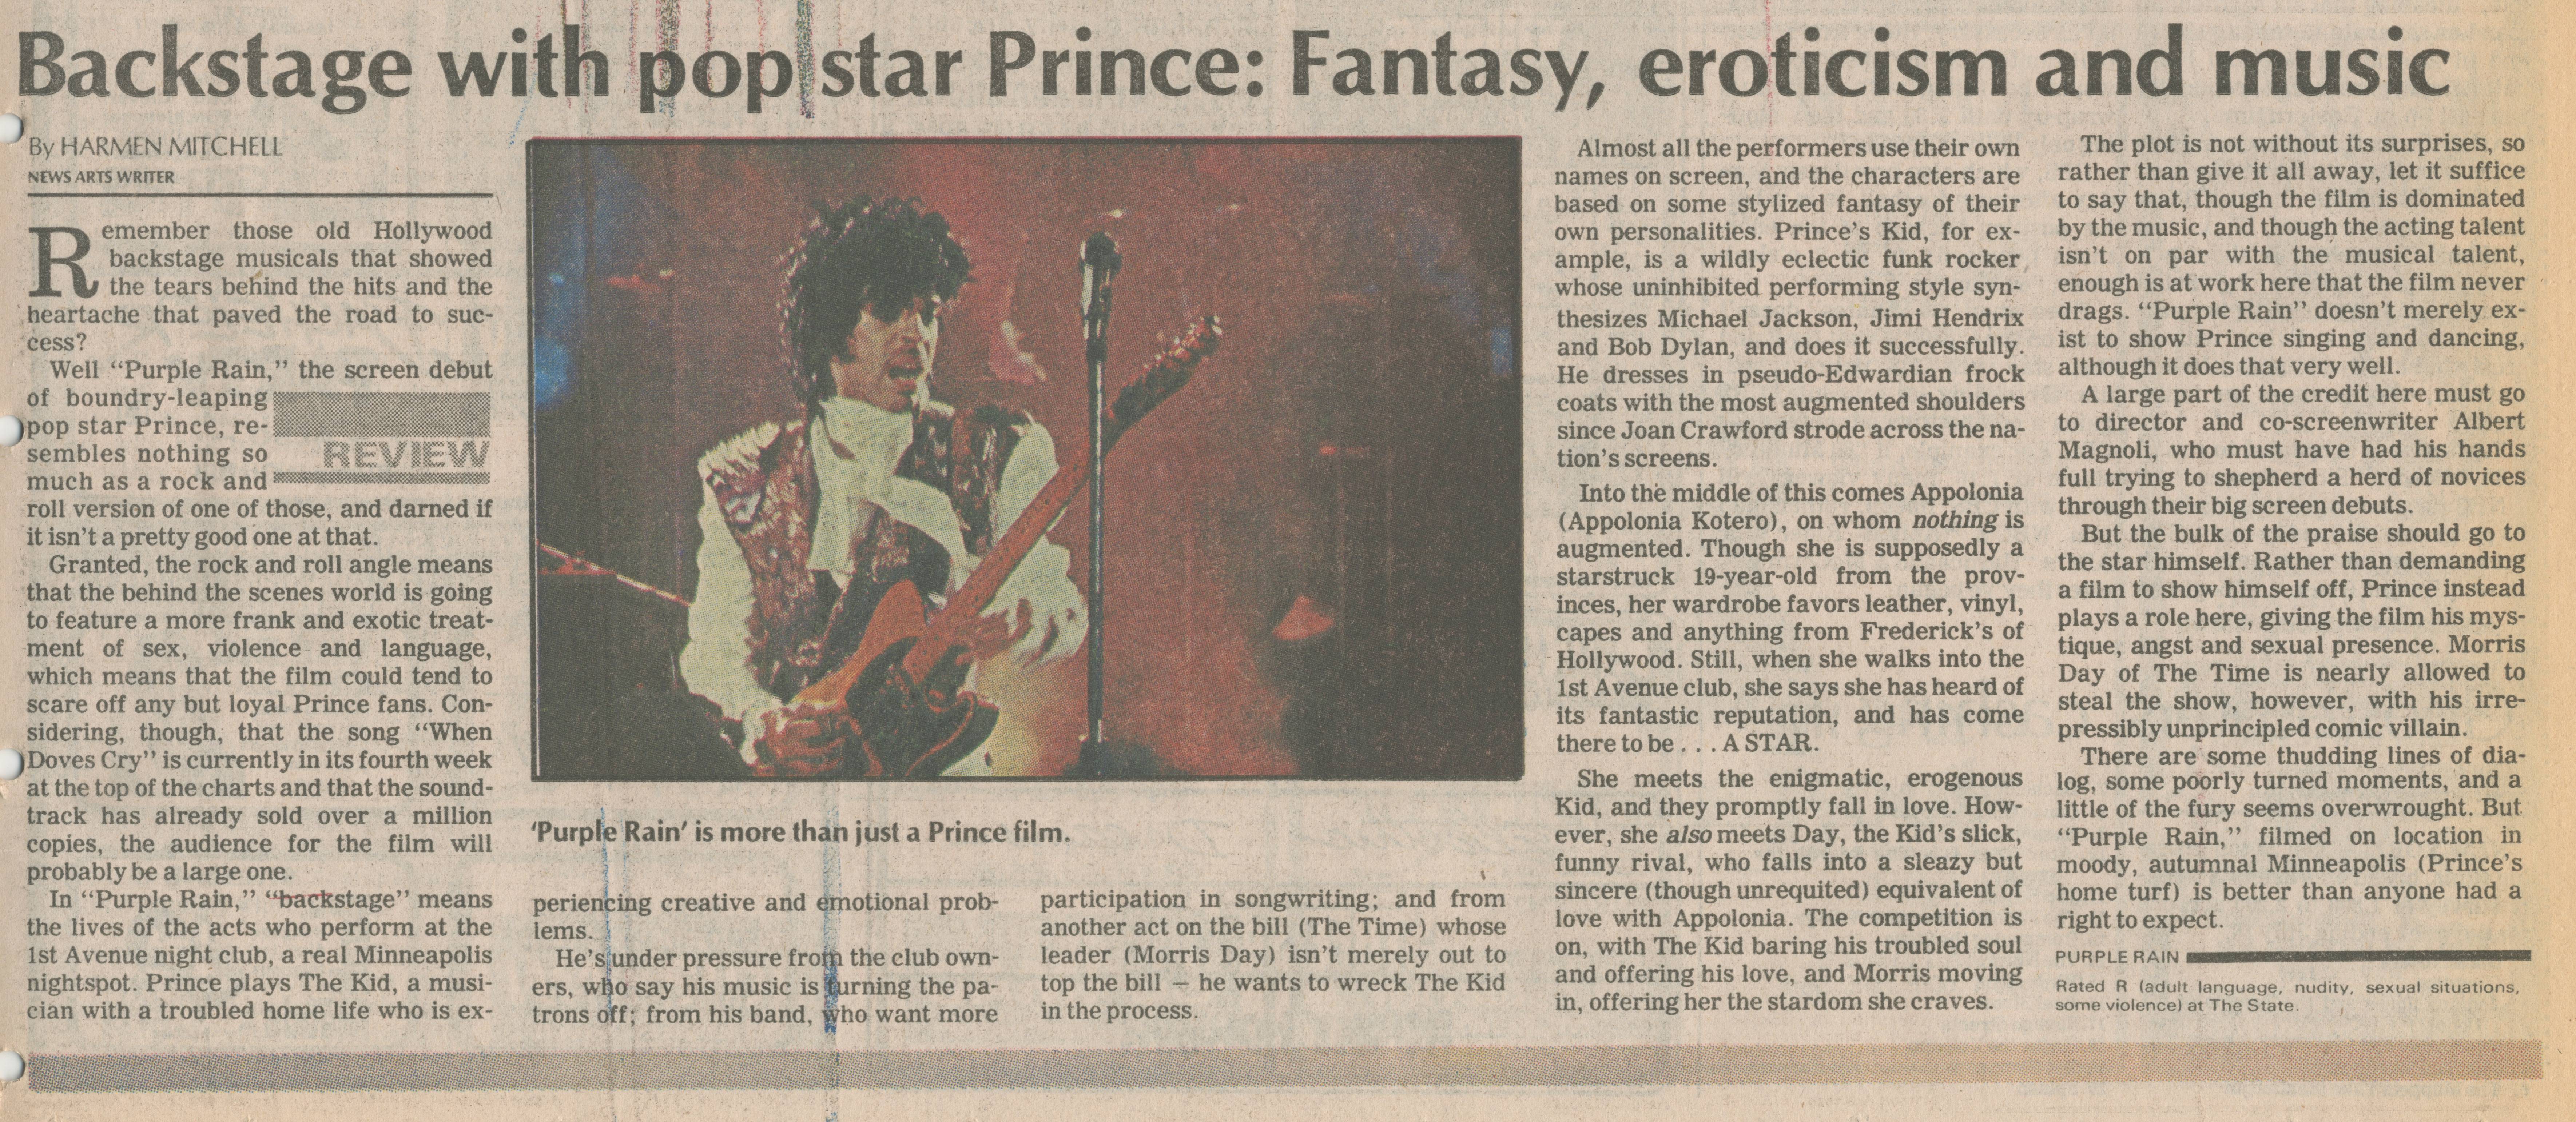 Backstage with pop star Prince: Fantasy, eroticism and music image